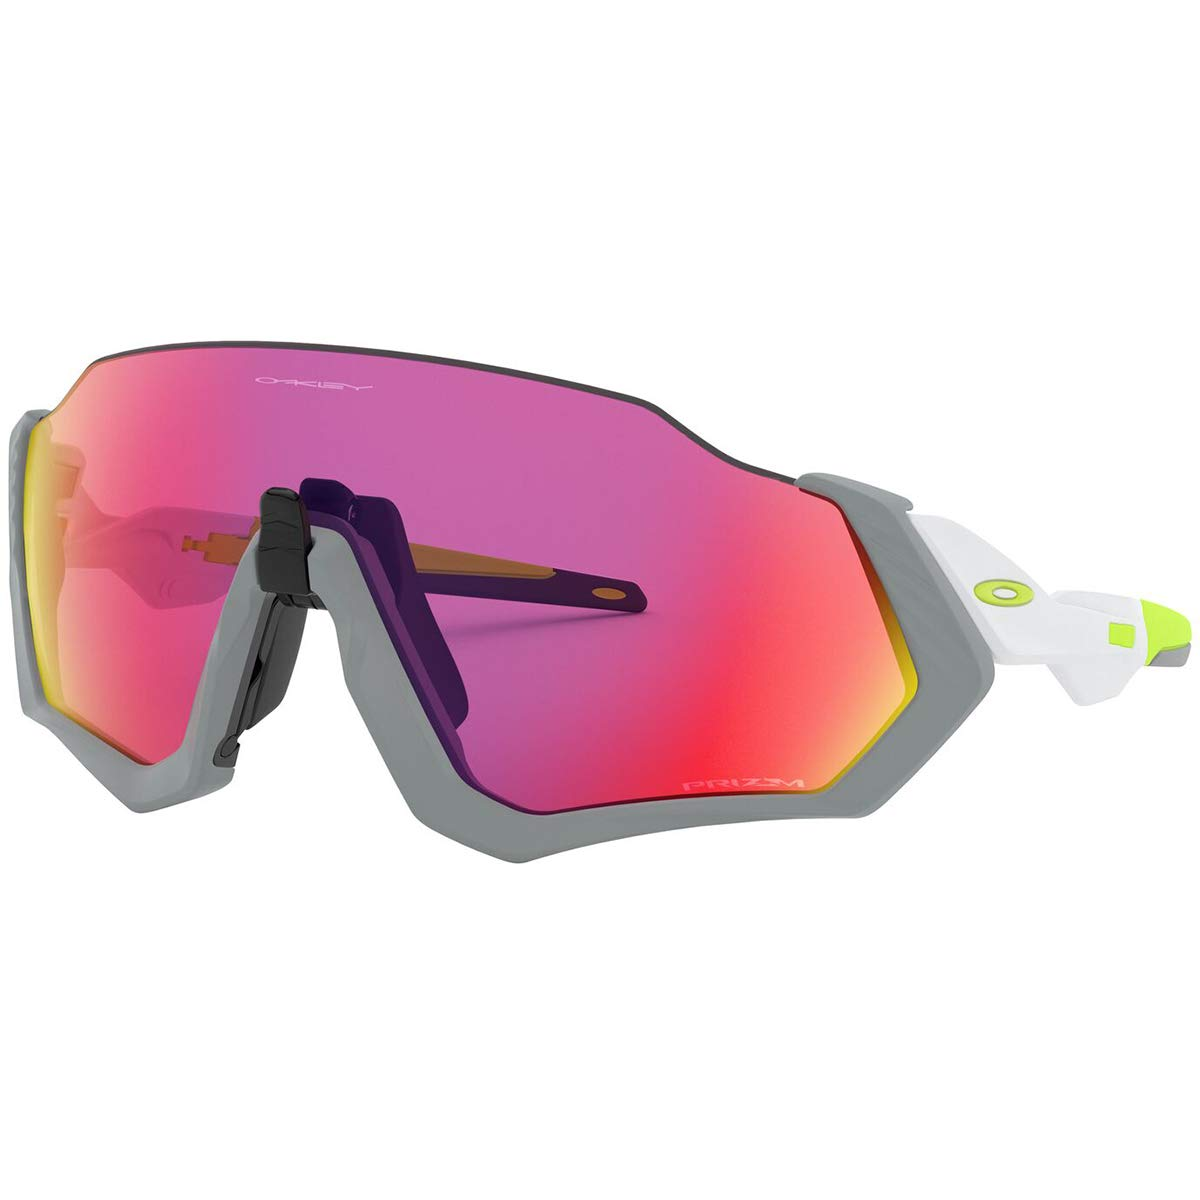 Oakley Men's Flight Jacket Sunglasses,OS,Matte Fog/Prizm Road by Oakley